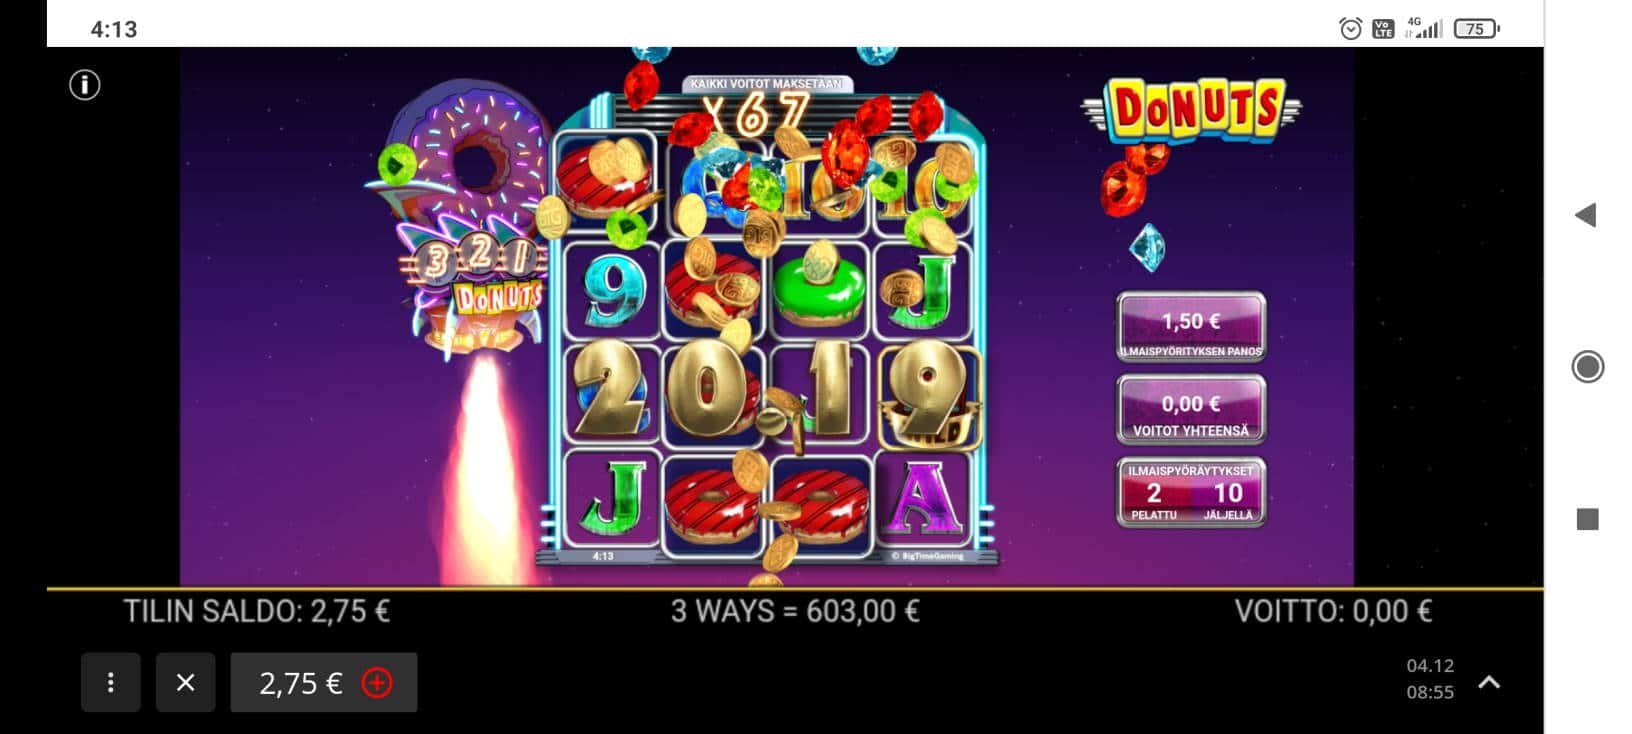 Donuts Casino win picture by Shorty 10.4.2021 603e 402X